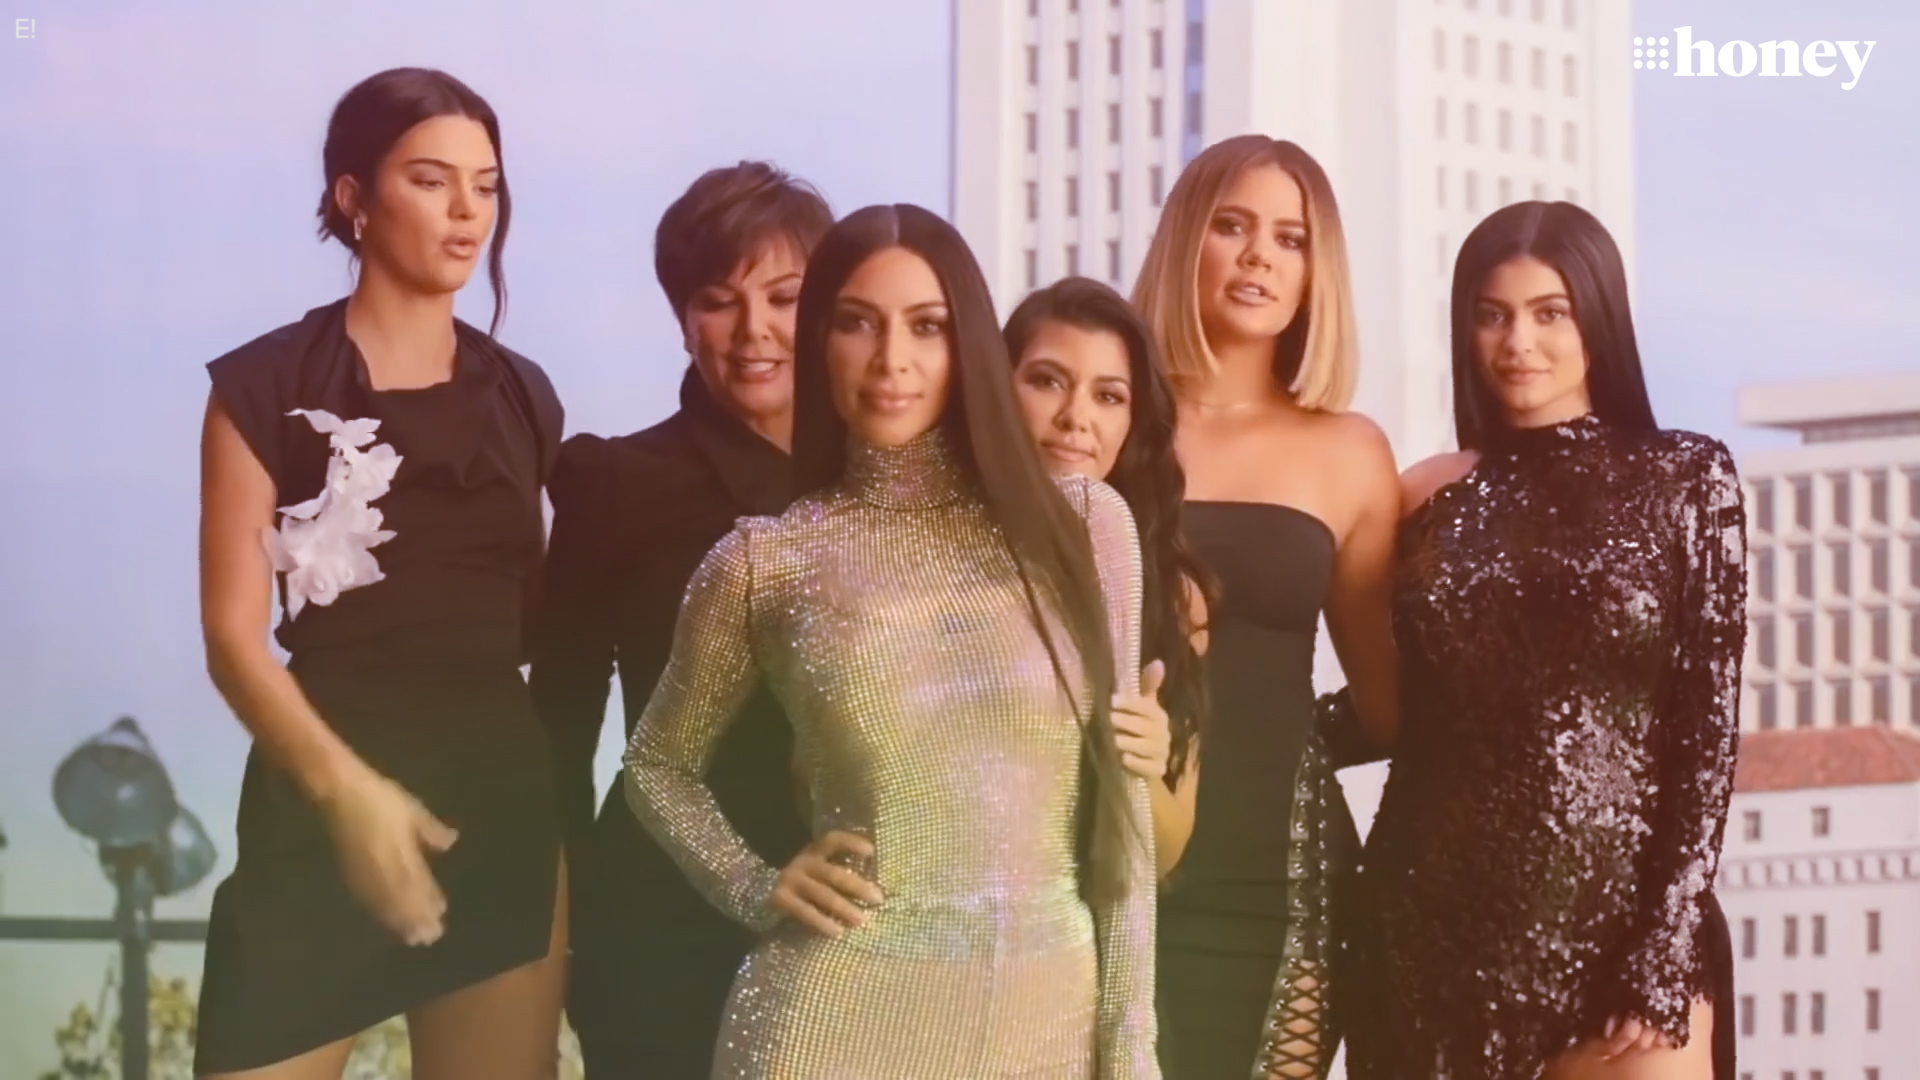 Inside the Kardashian empire